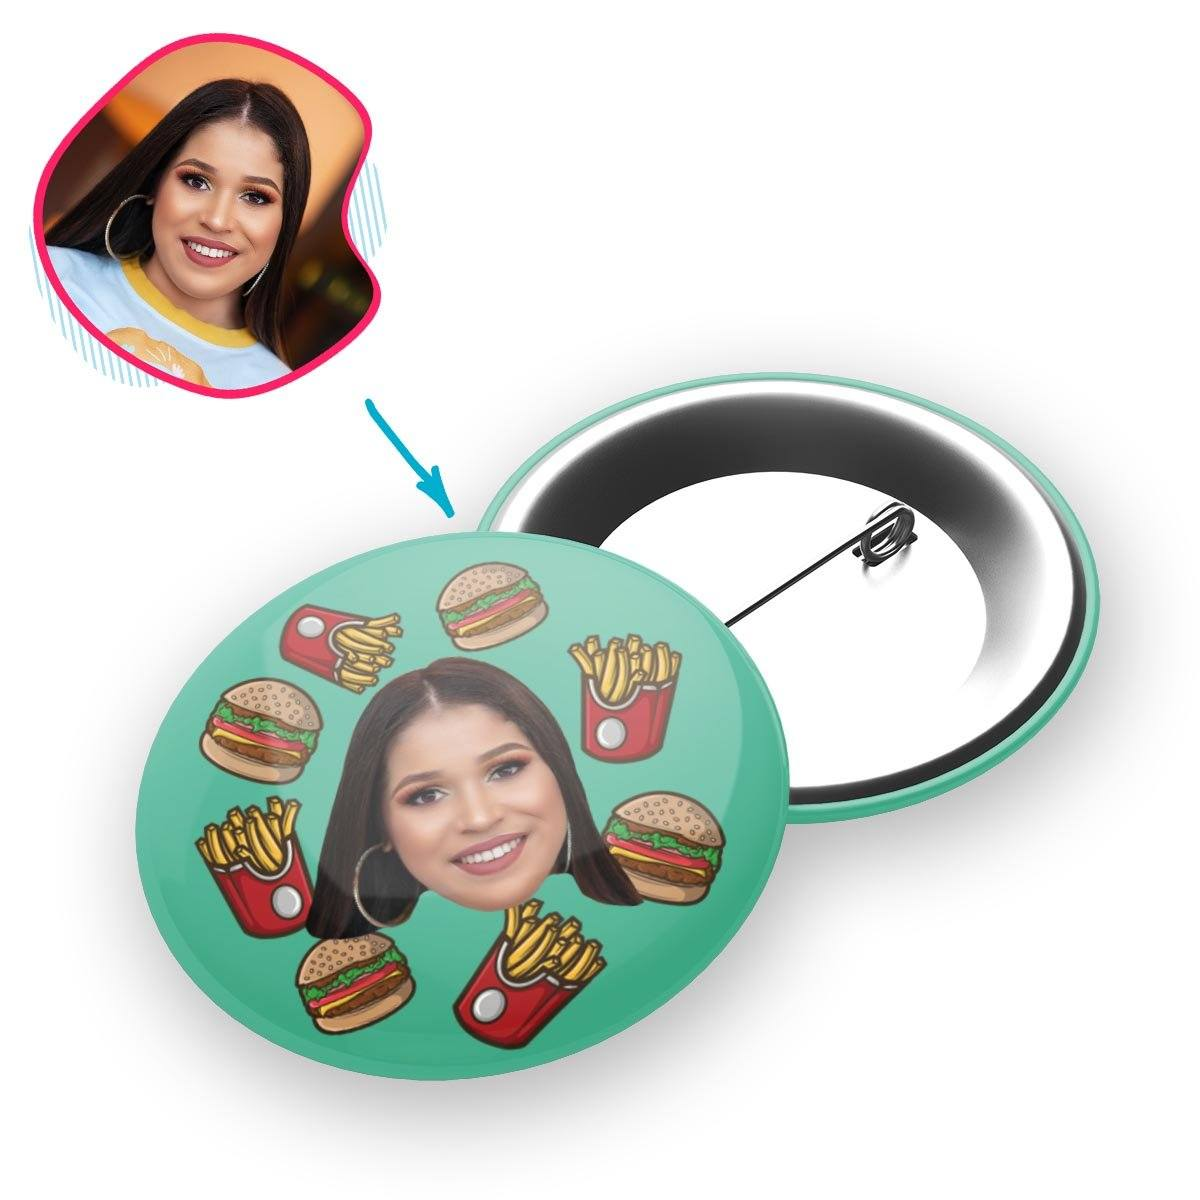 mint Fastfood pin personalized with photo of face printed on it